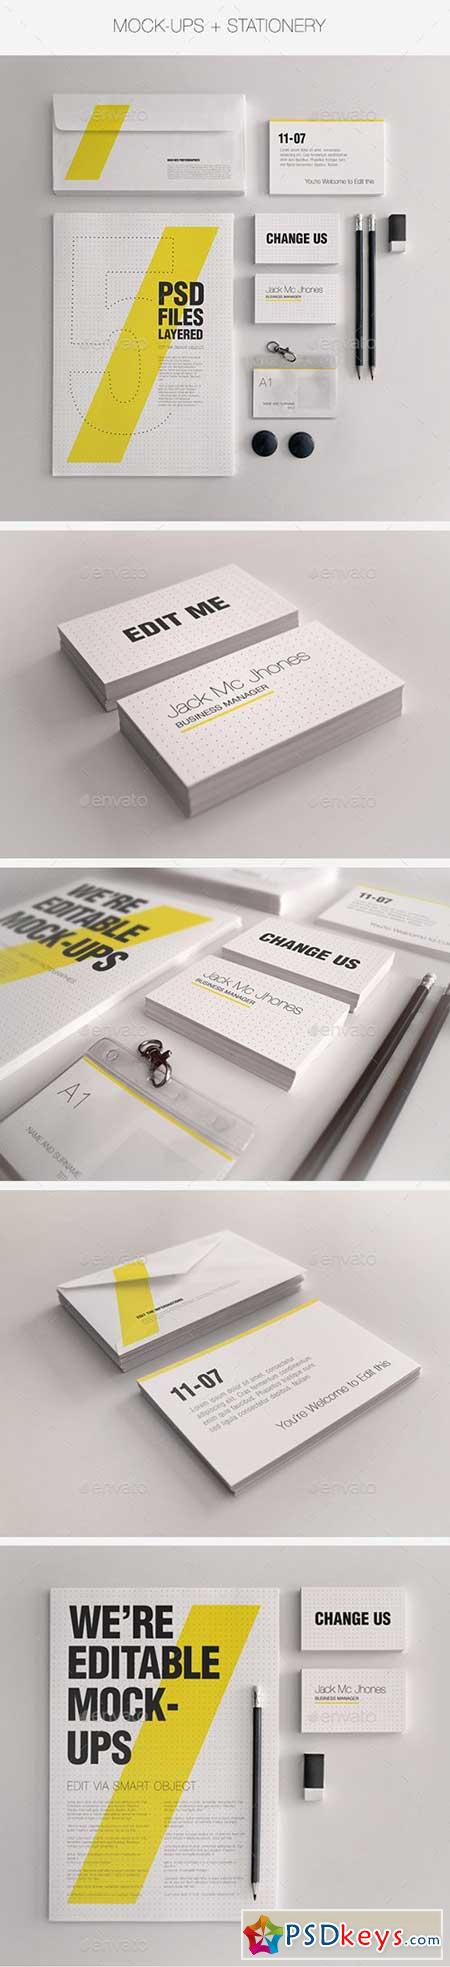 Realistic Stationery Mock-Up Set 1 - Corporate ID 3358091